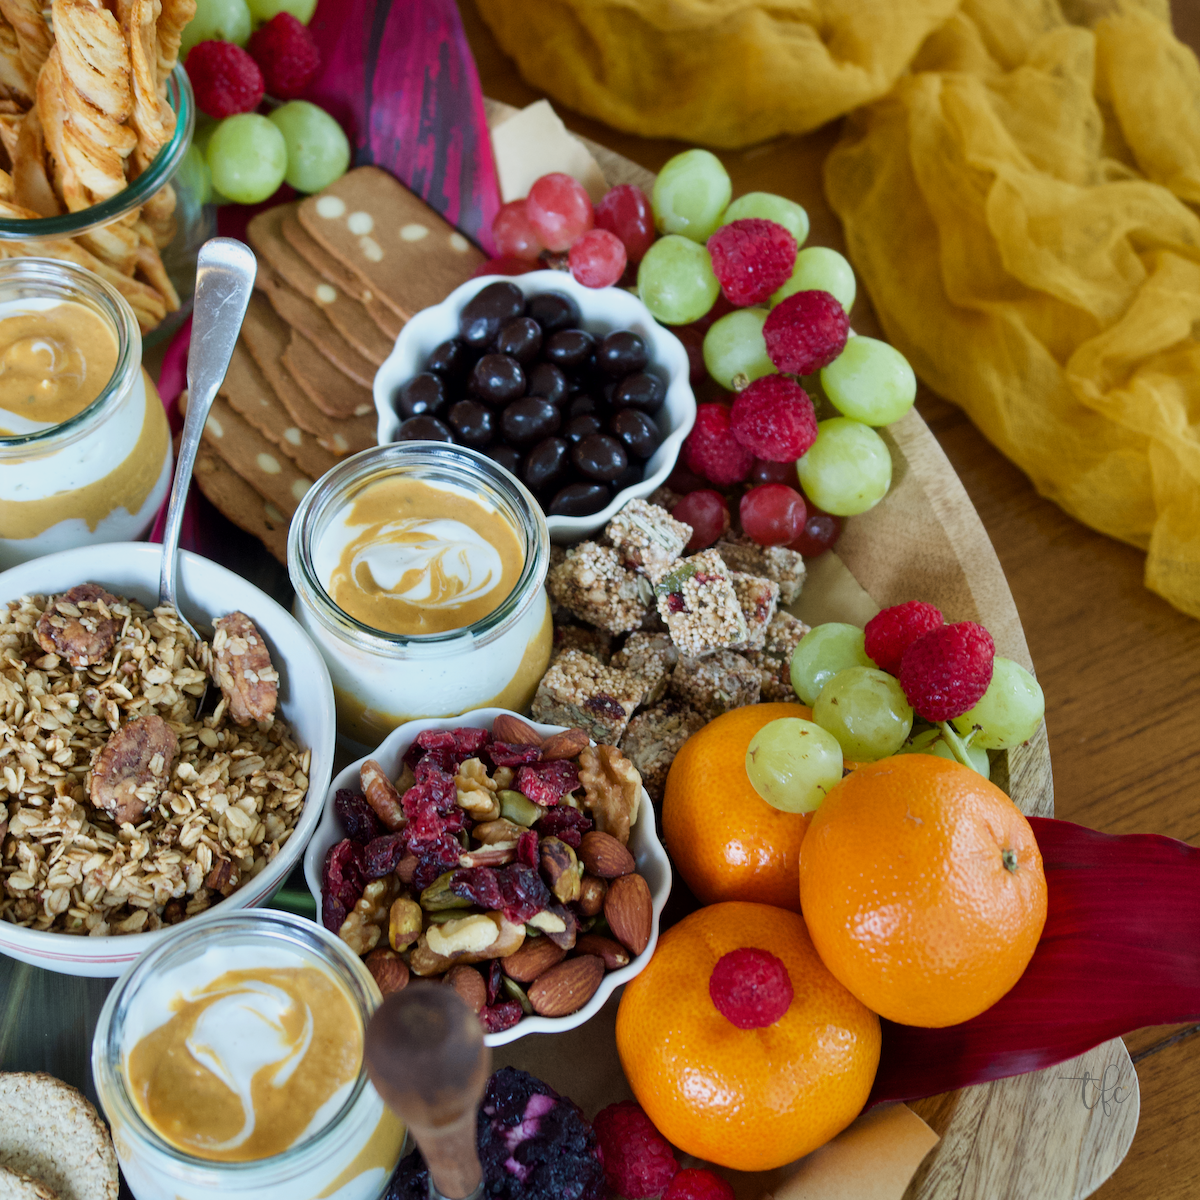 Fall Charcuterie Board with image of right half of board, highlighting the granola, oranges and fruit, trail mix and more.